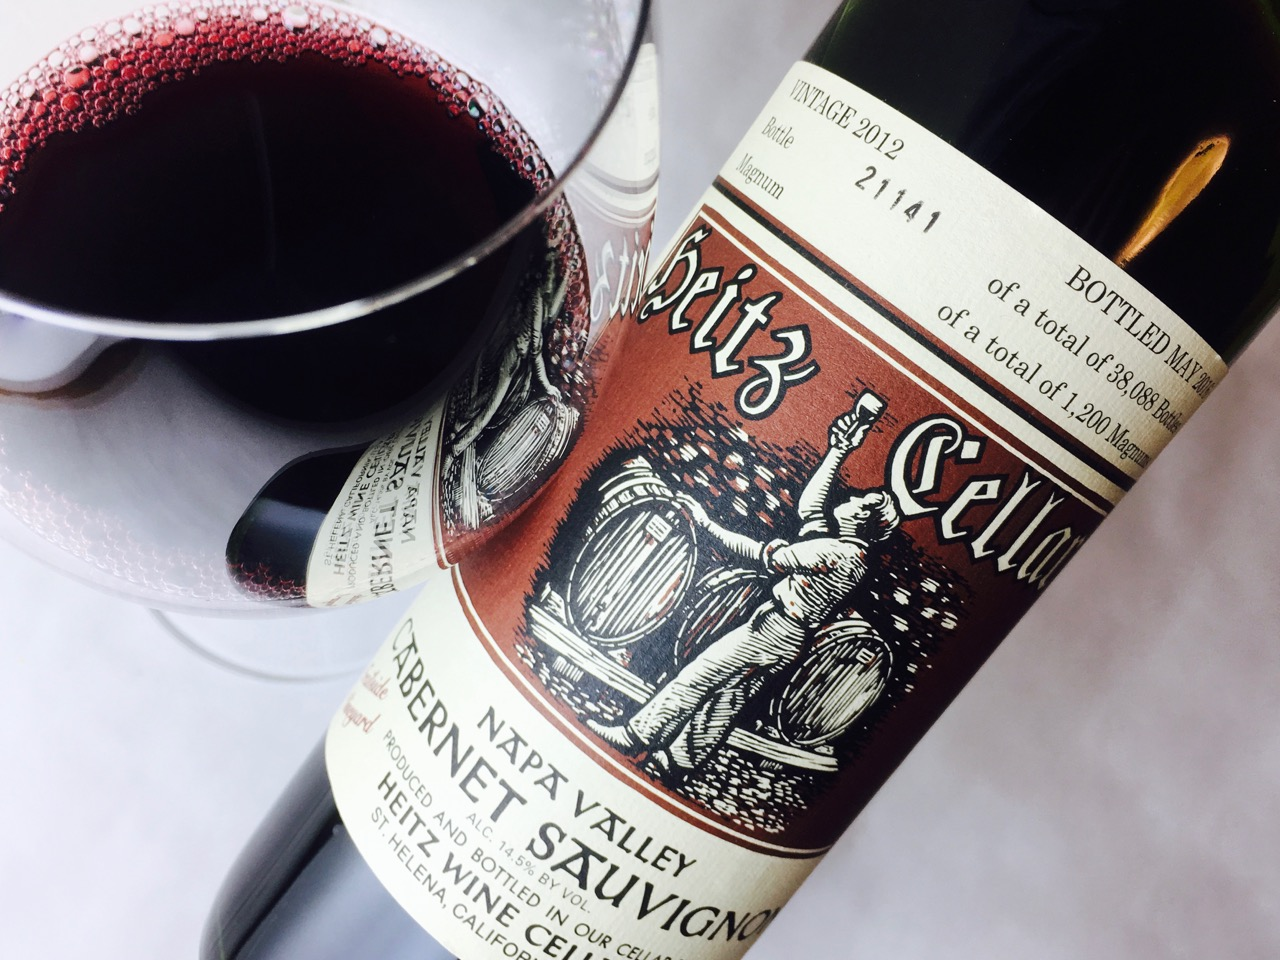 2012 Heitz Cellar Cabernet Sauvignon Trailside Vineyard Napa Valley